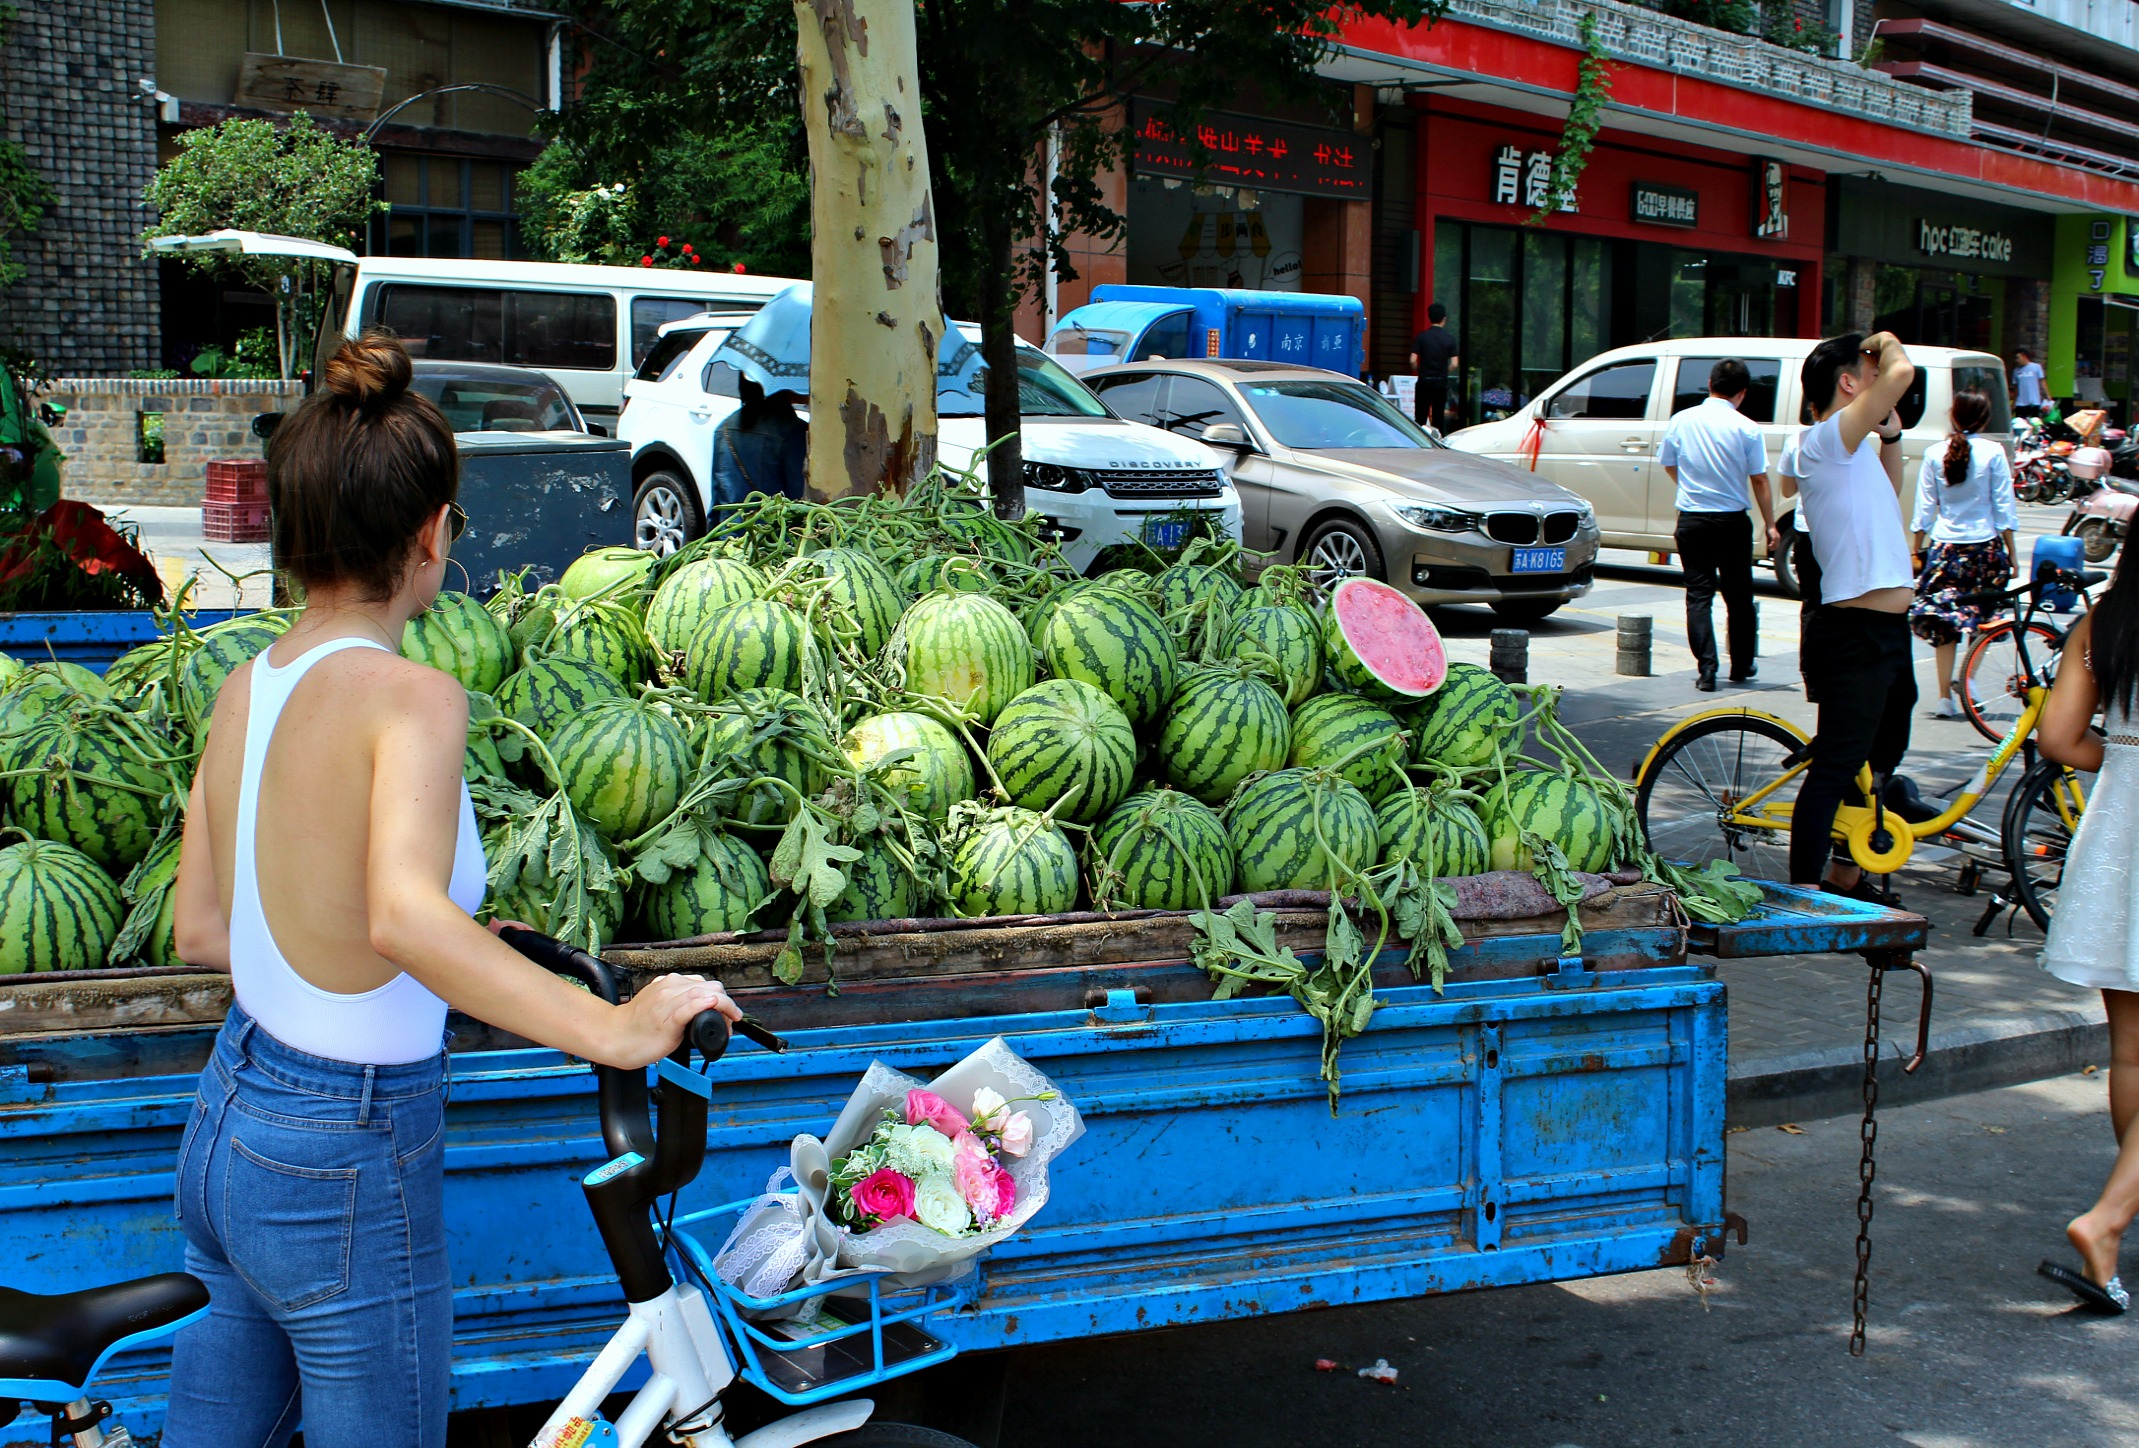 buying watermelon from the local watermelon truck outside my flat